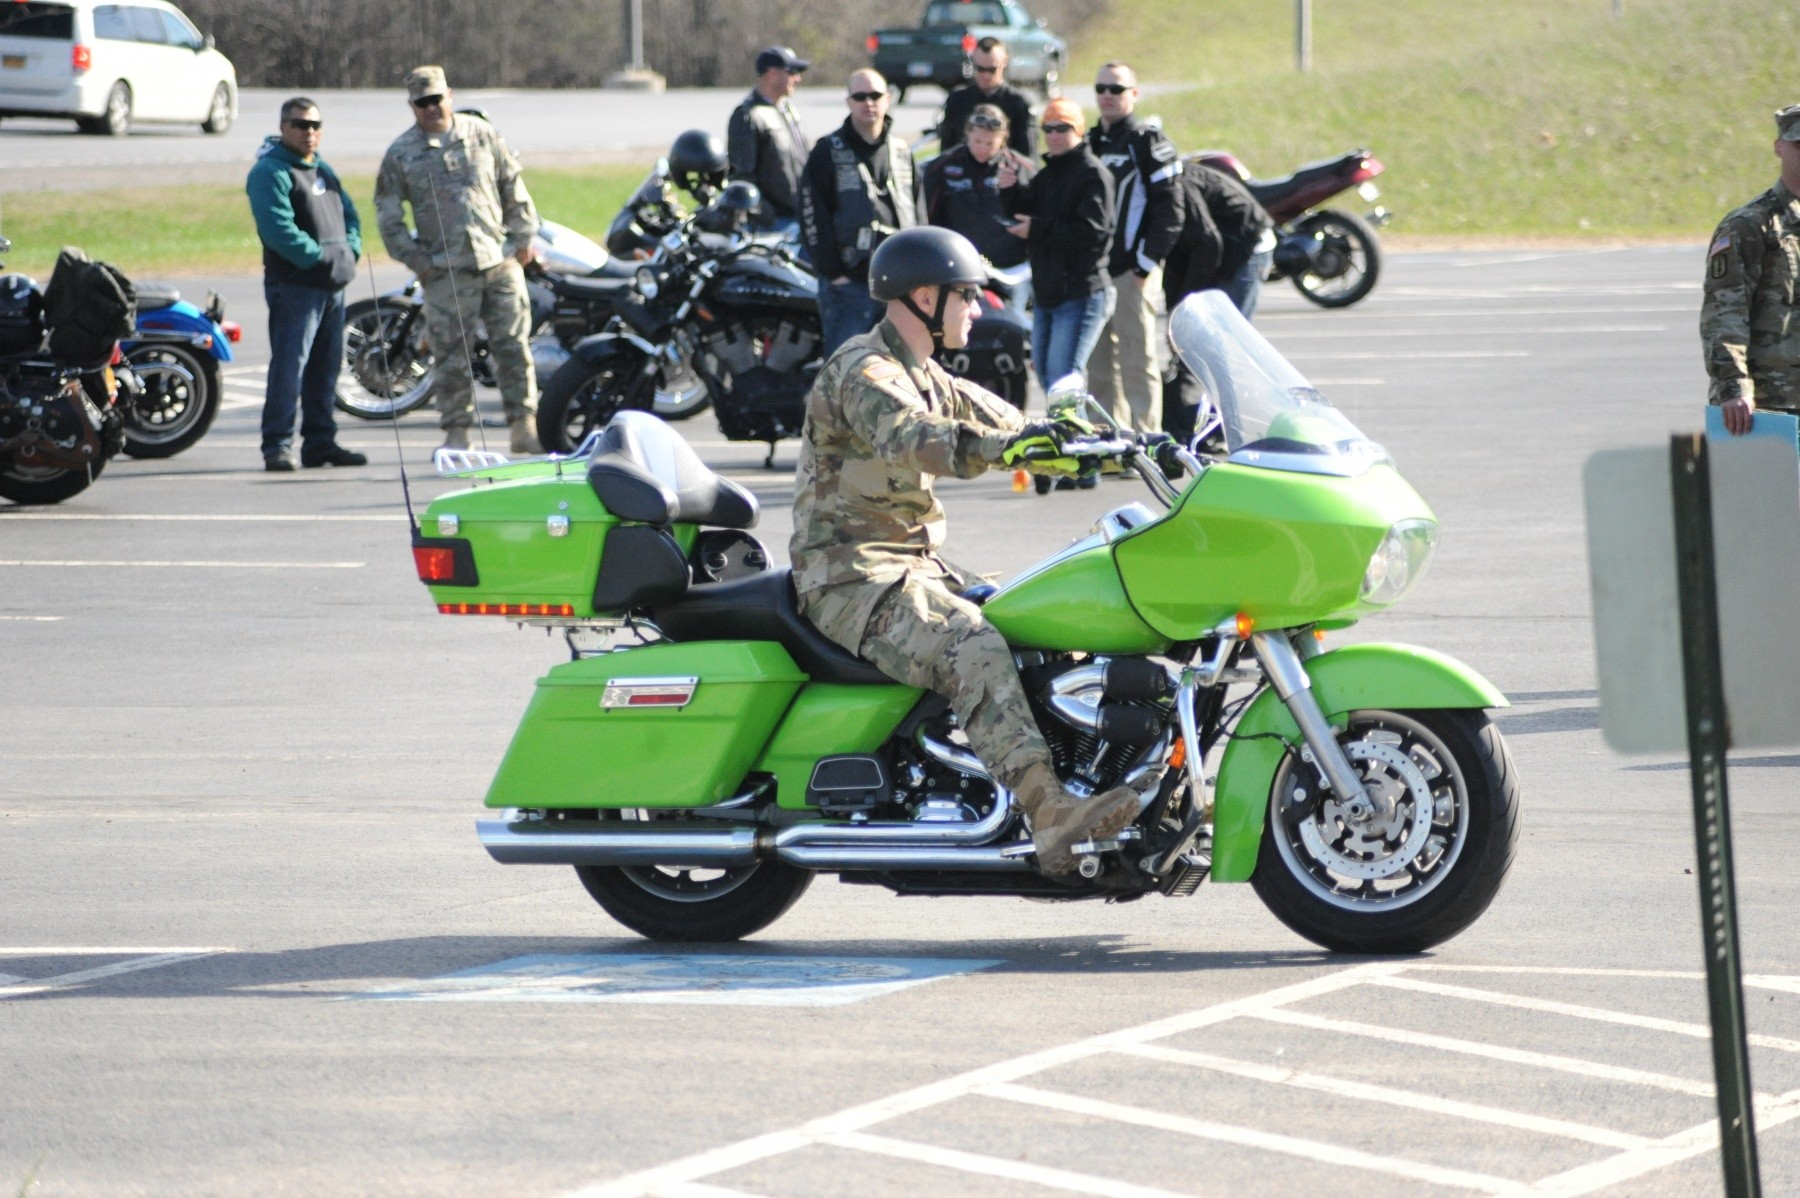 Motorcycle Safety Day at Fort Drum gathers Soldiers to discuss